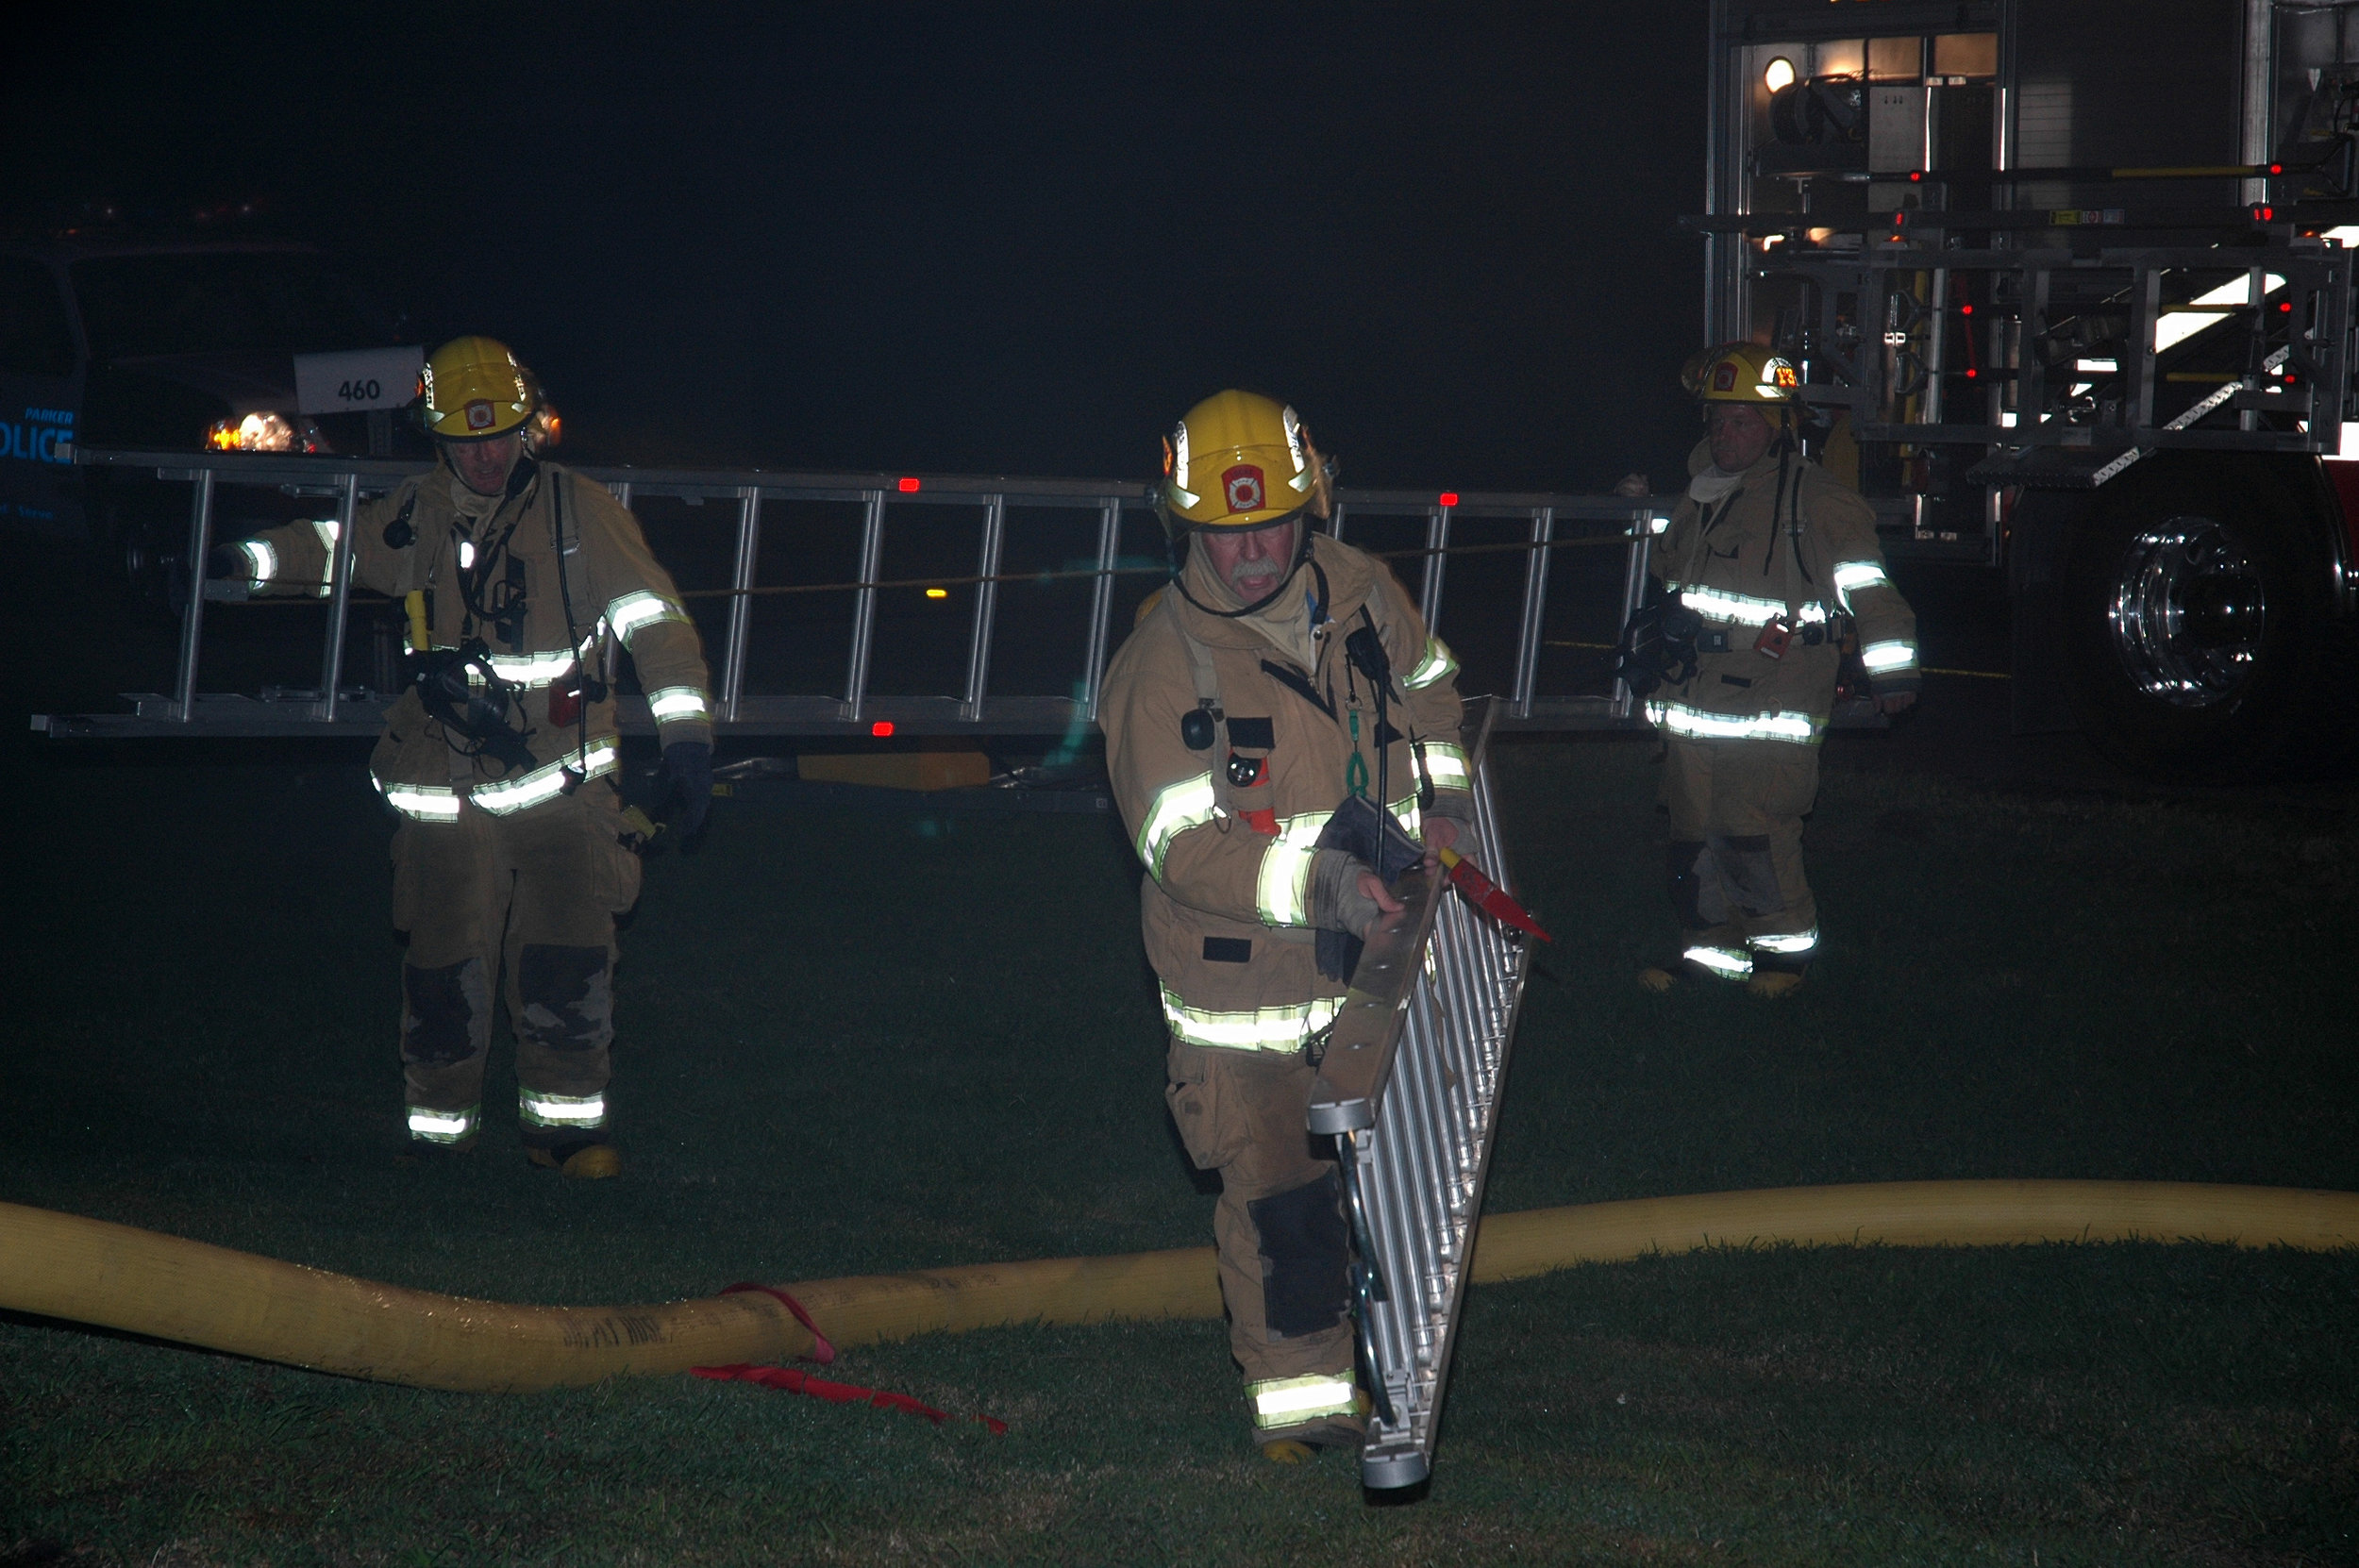 , David Leonard, center, carrying a roof ladder at a structure fire